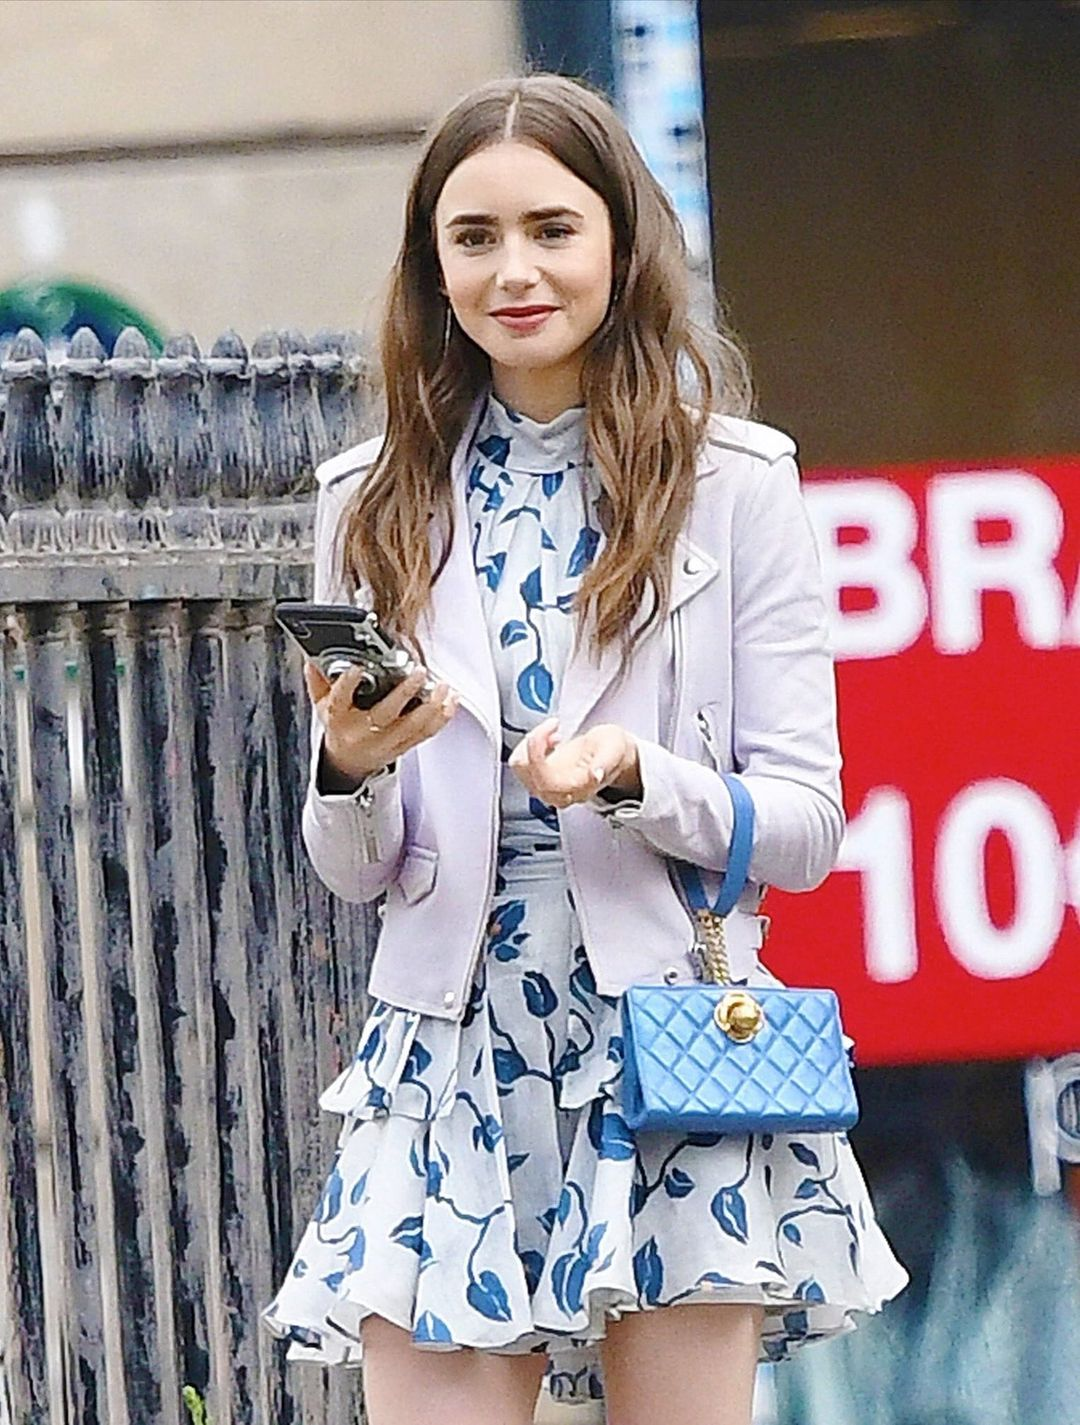 Lily Collins on set of Emily in paris